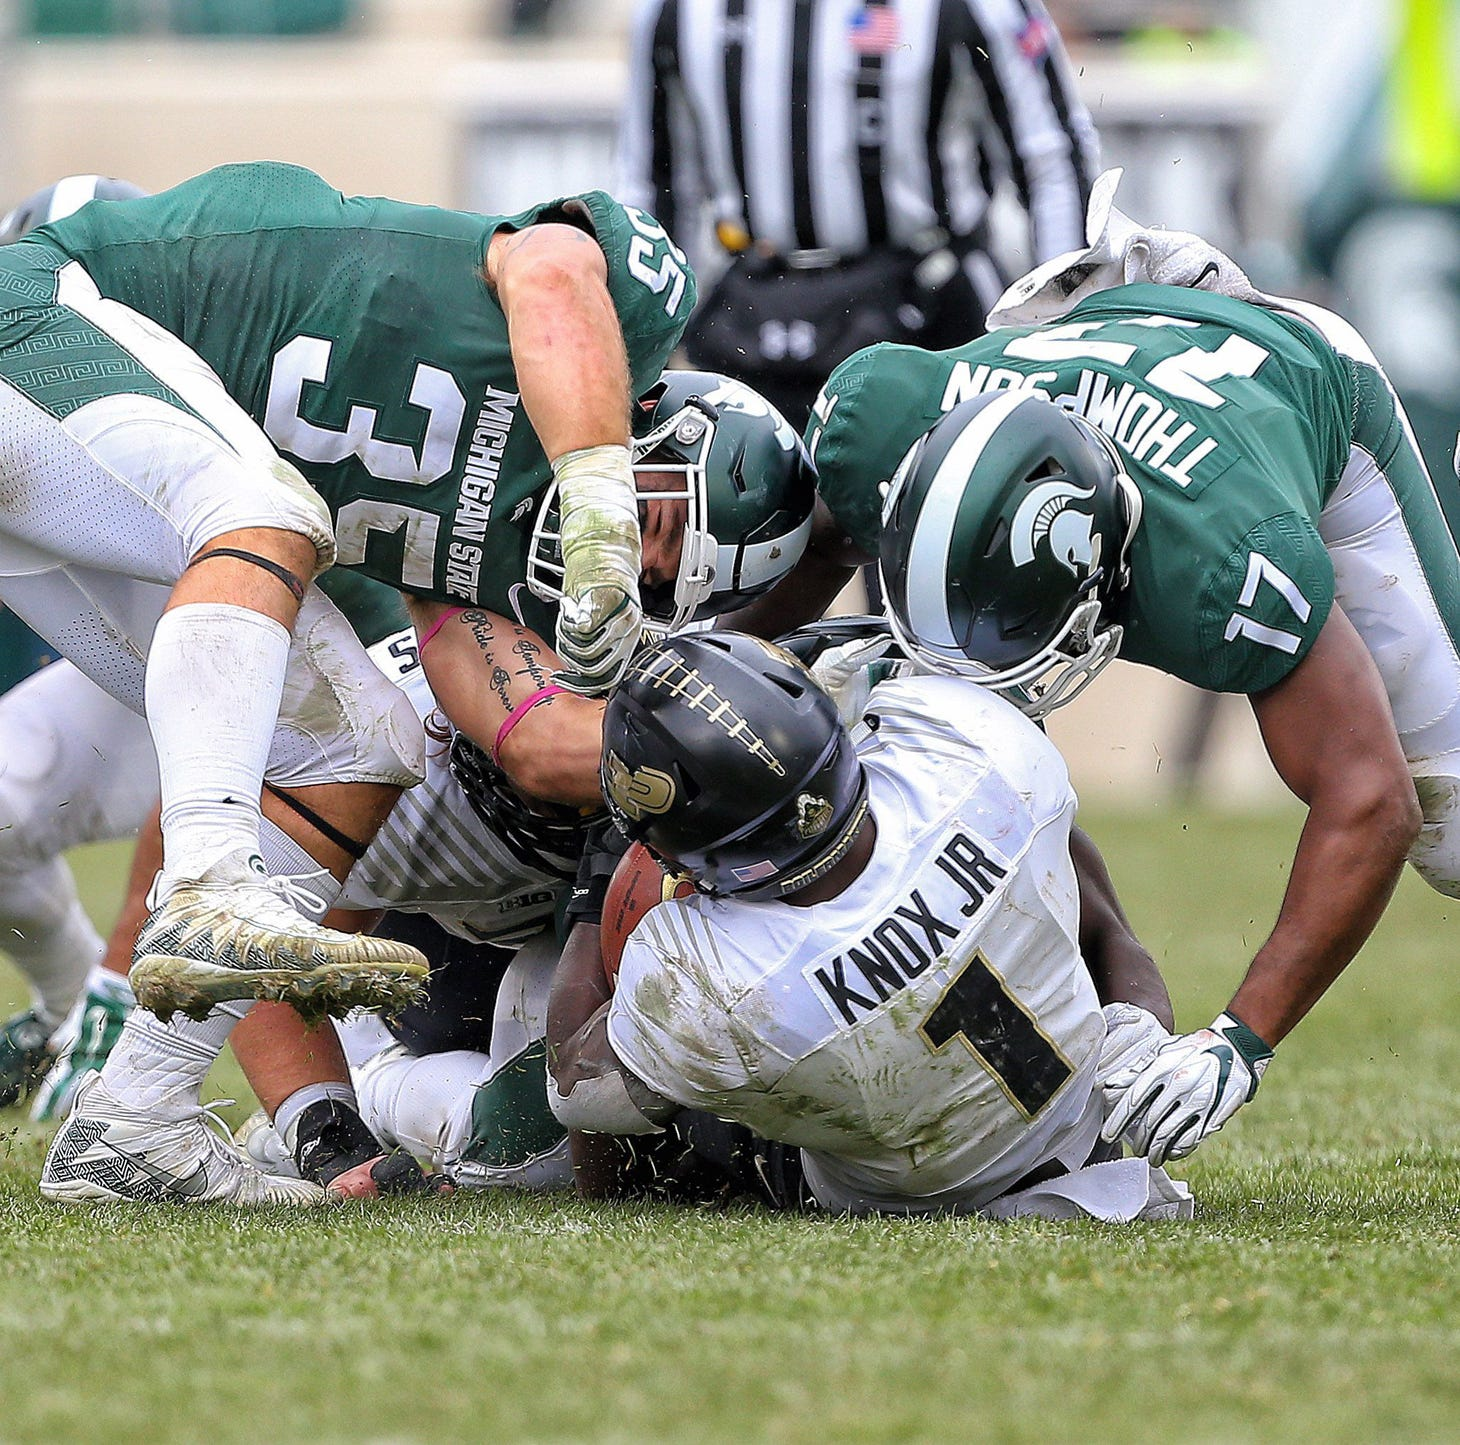 Michigan State football's Joe Bachie remains anchor for linebackers, defense